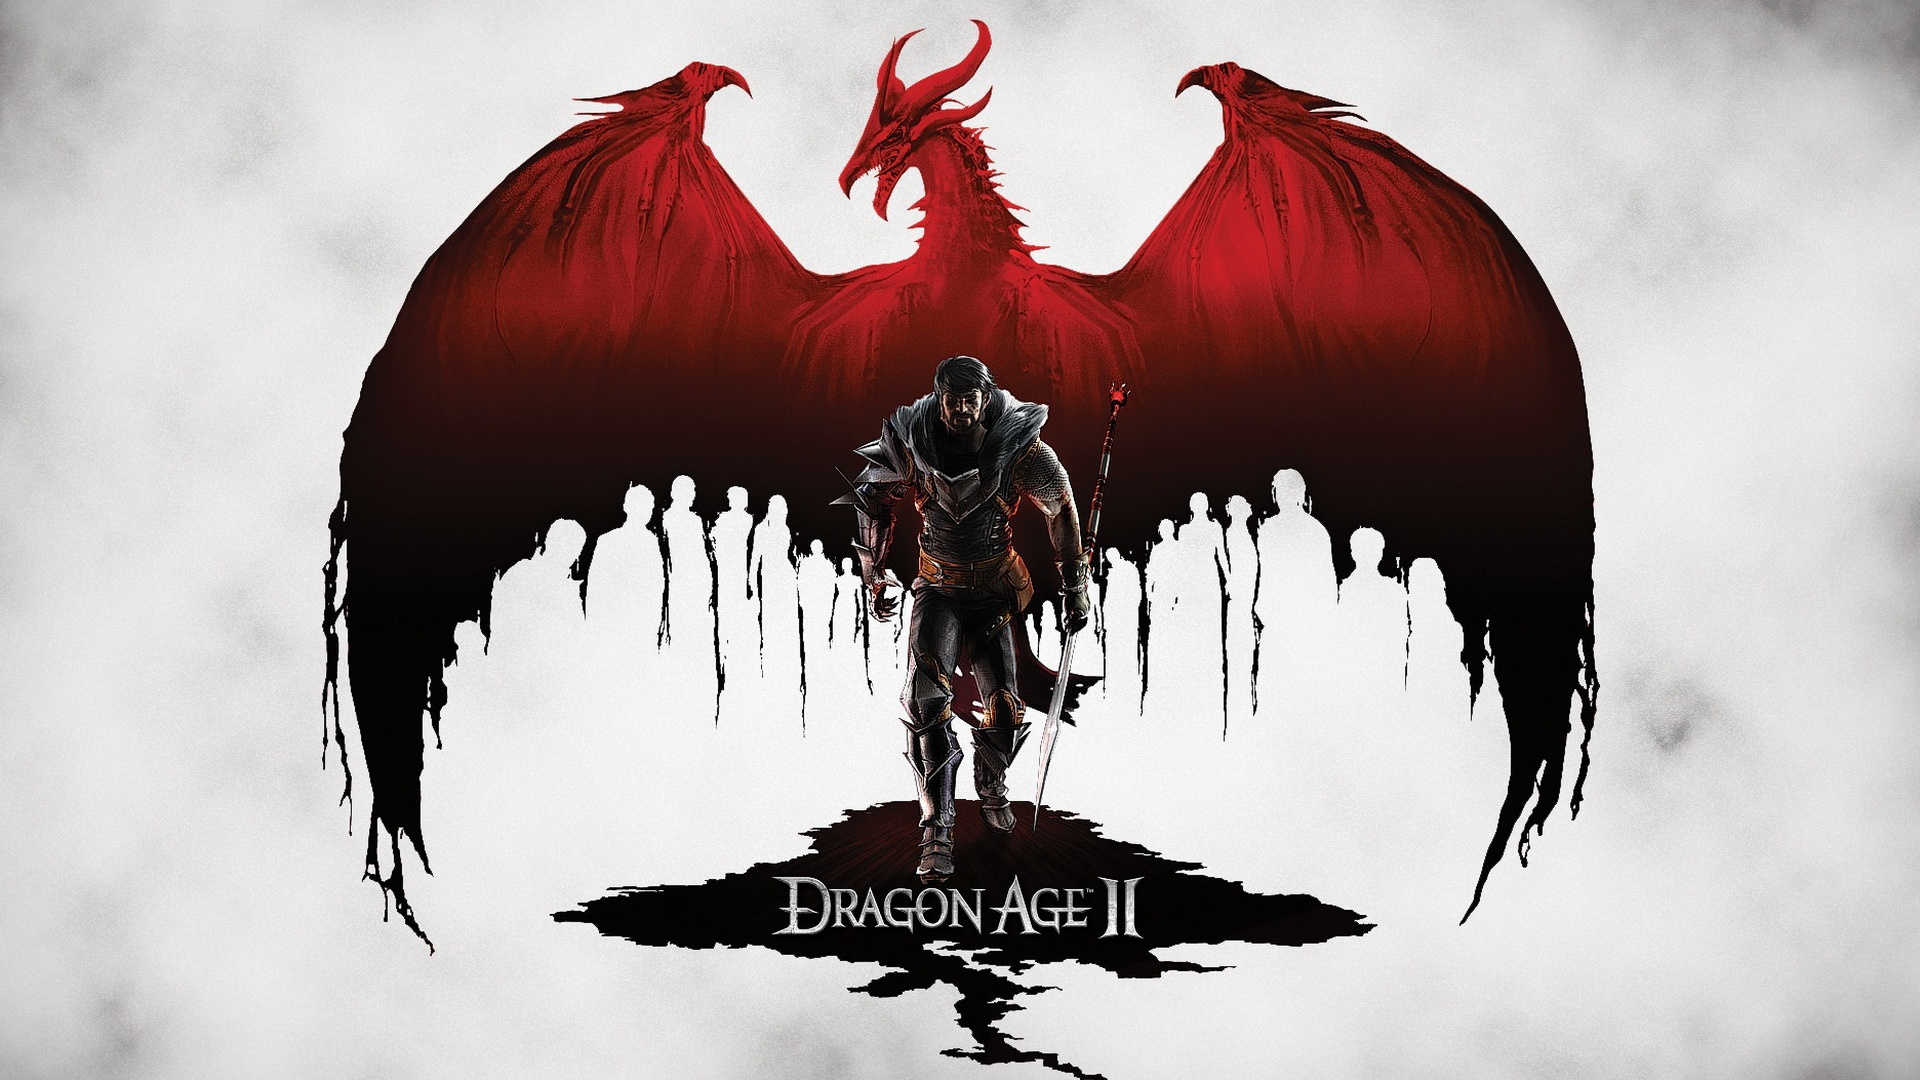 88 Dragon Age: Origins Wallpapers | Dragon Age: Origins